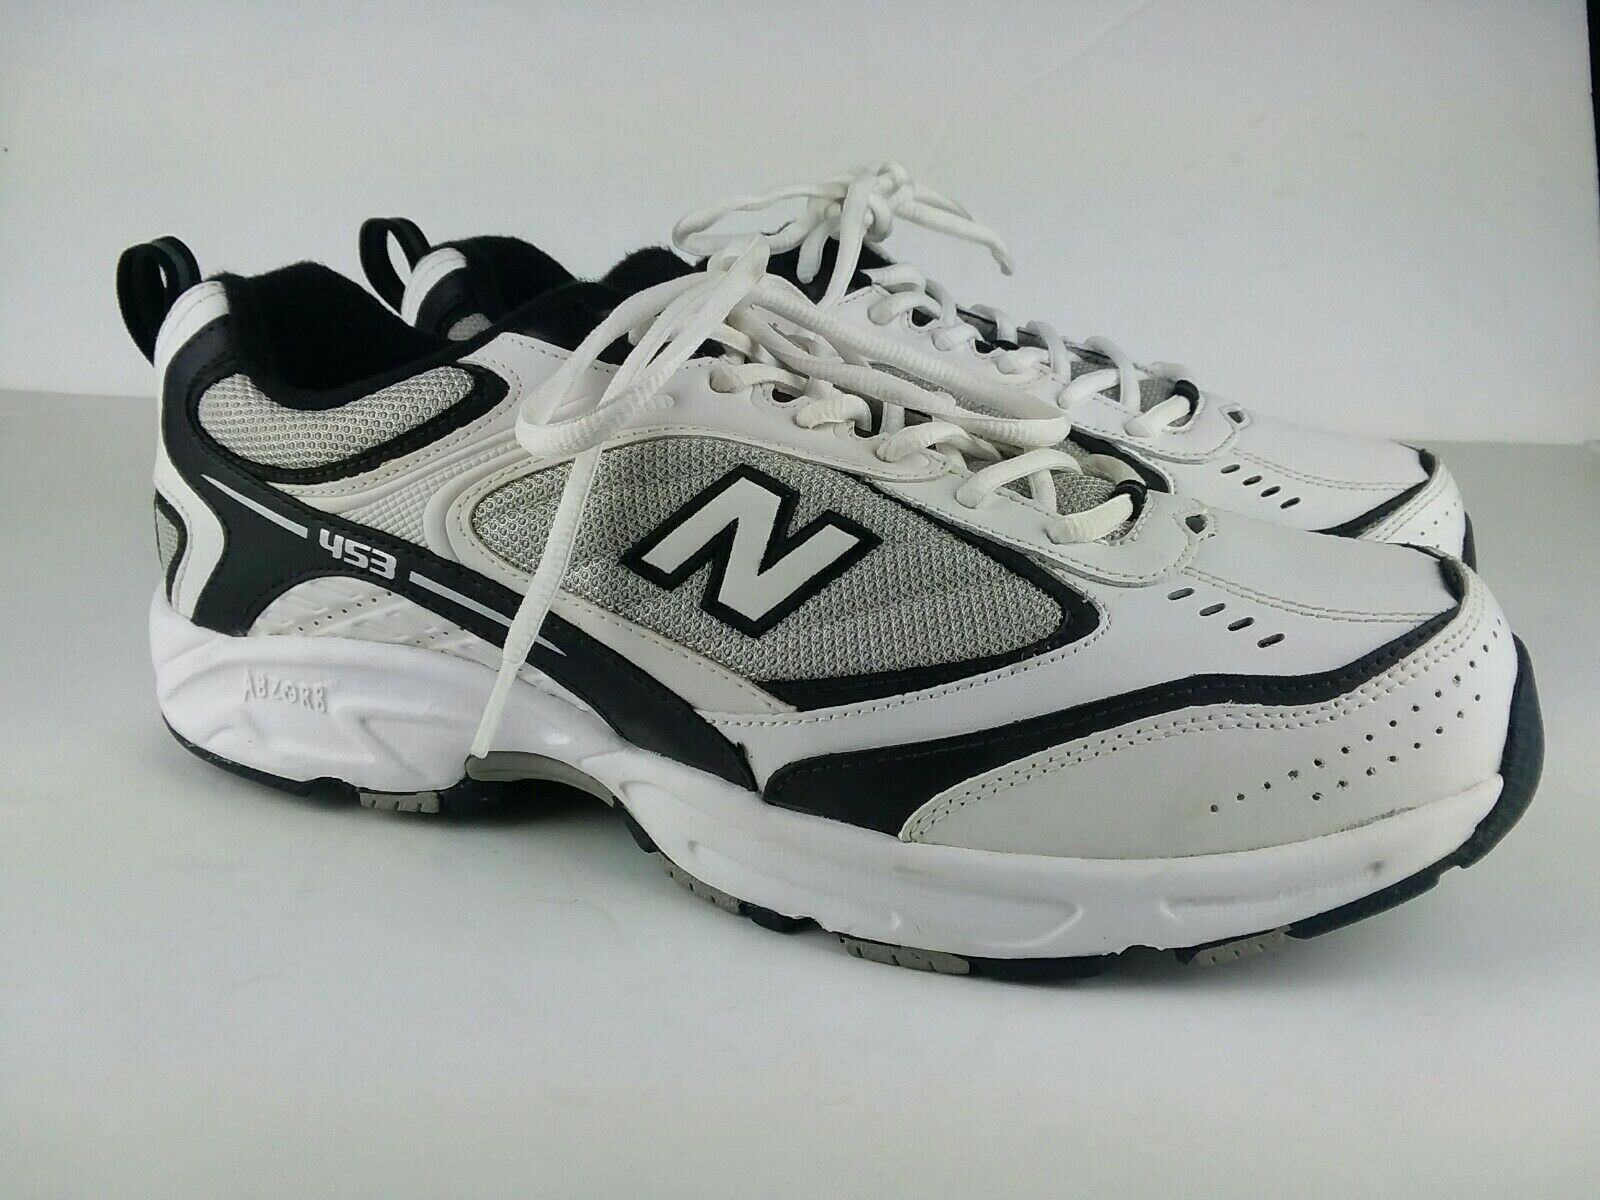 New Balance 453 ABZORB MX453BL RUNNING WORKOUT shoes Men's Sz 13 4E